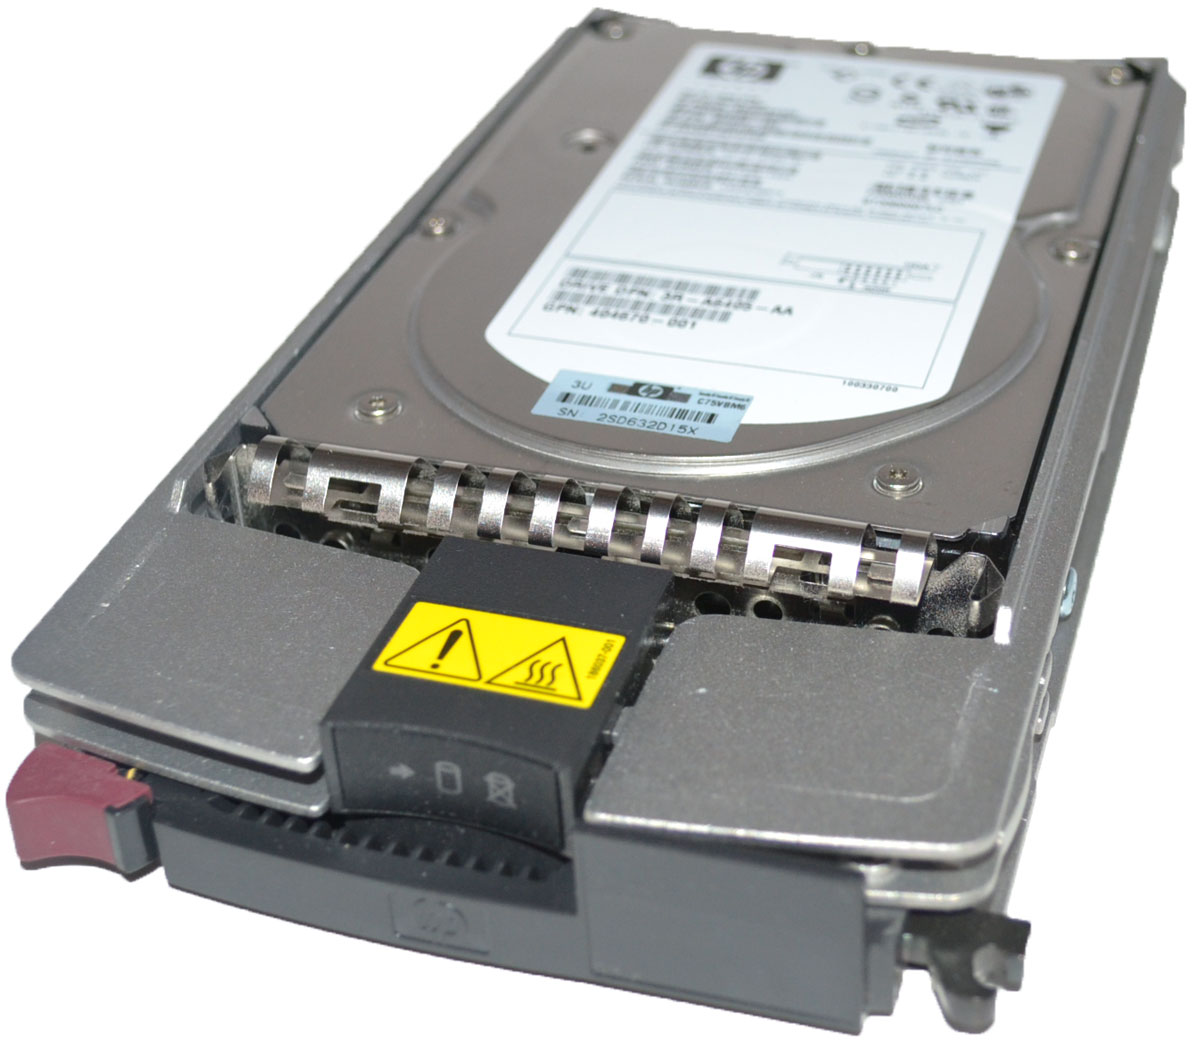 "364622-B22 366023-001 366023-002 HP 300GB 10K 3.5/"" FIBRE CHANNEL HARD DRIVE"